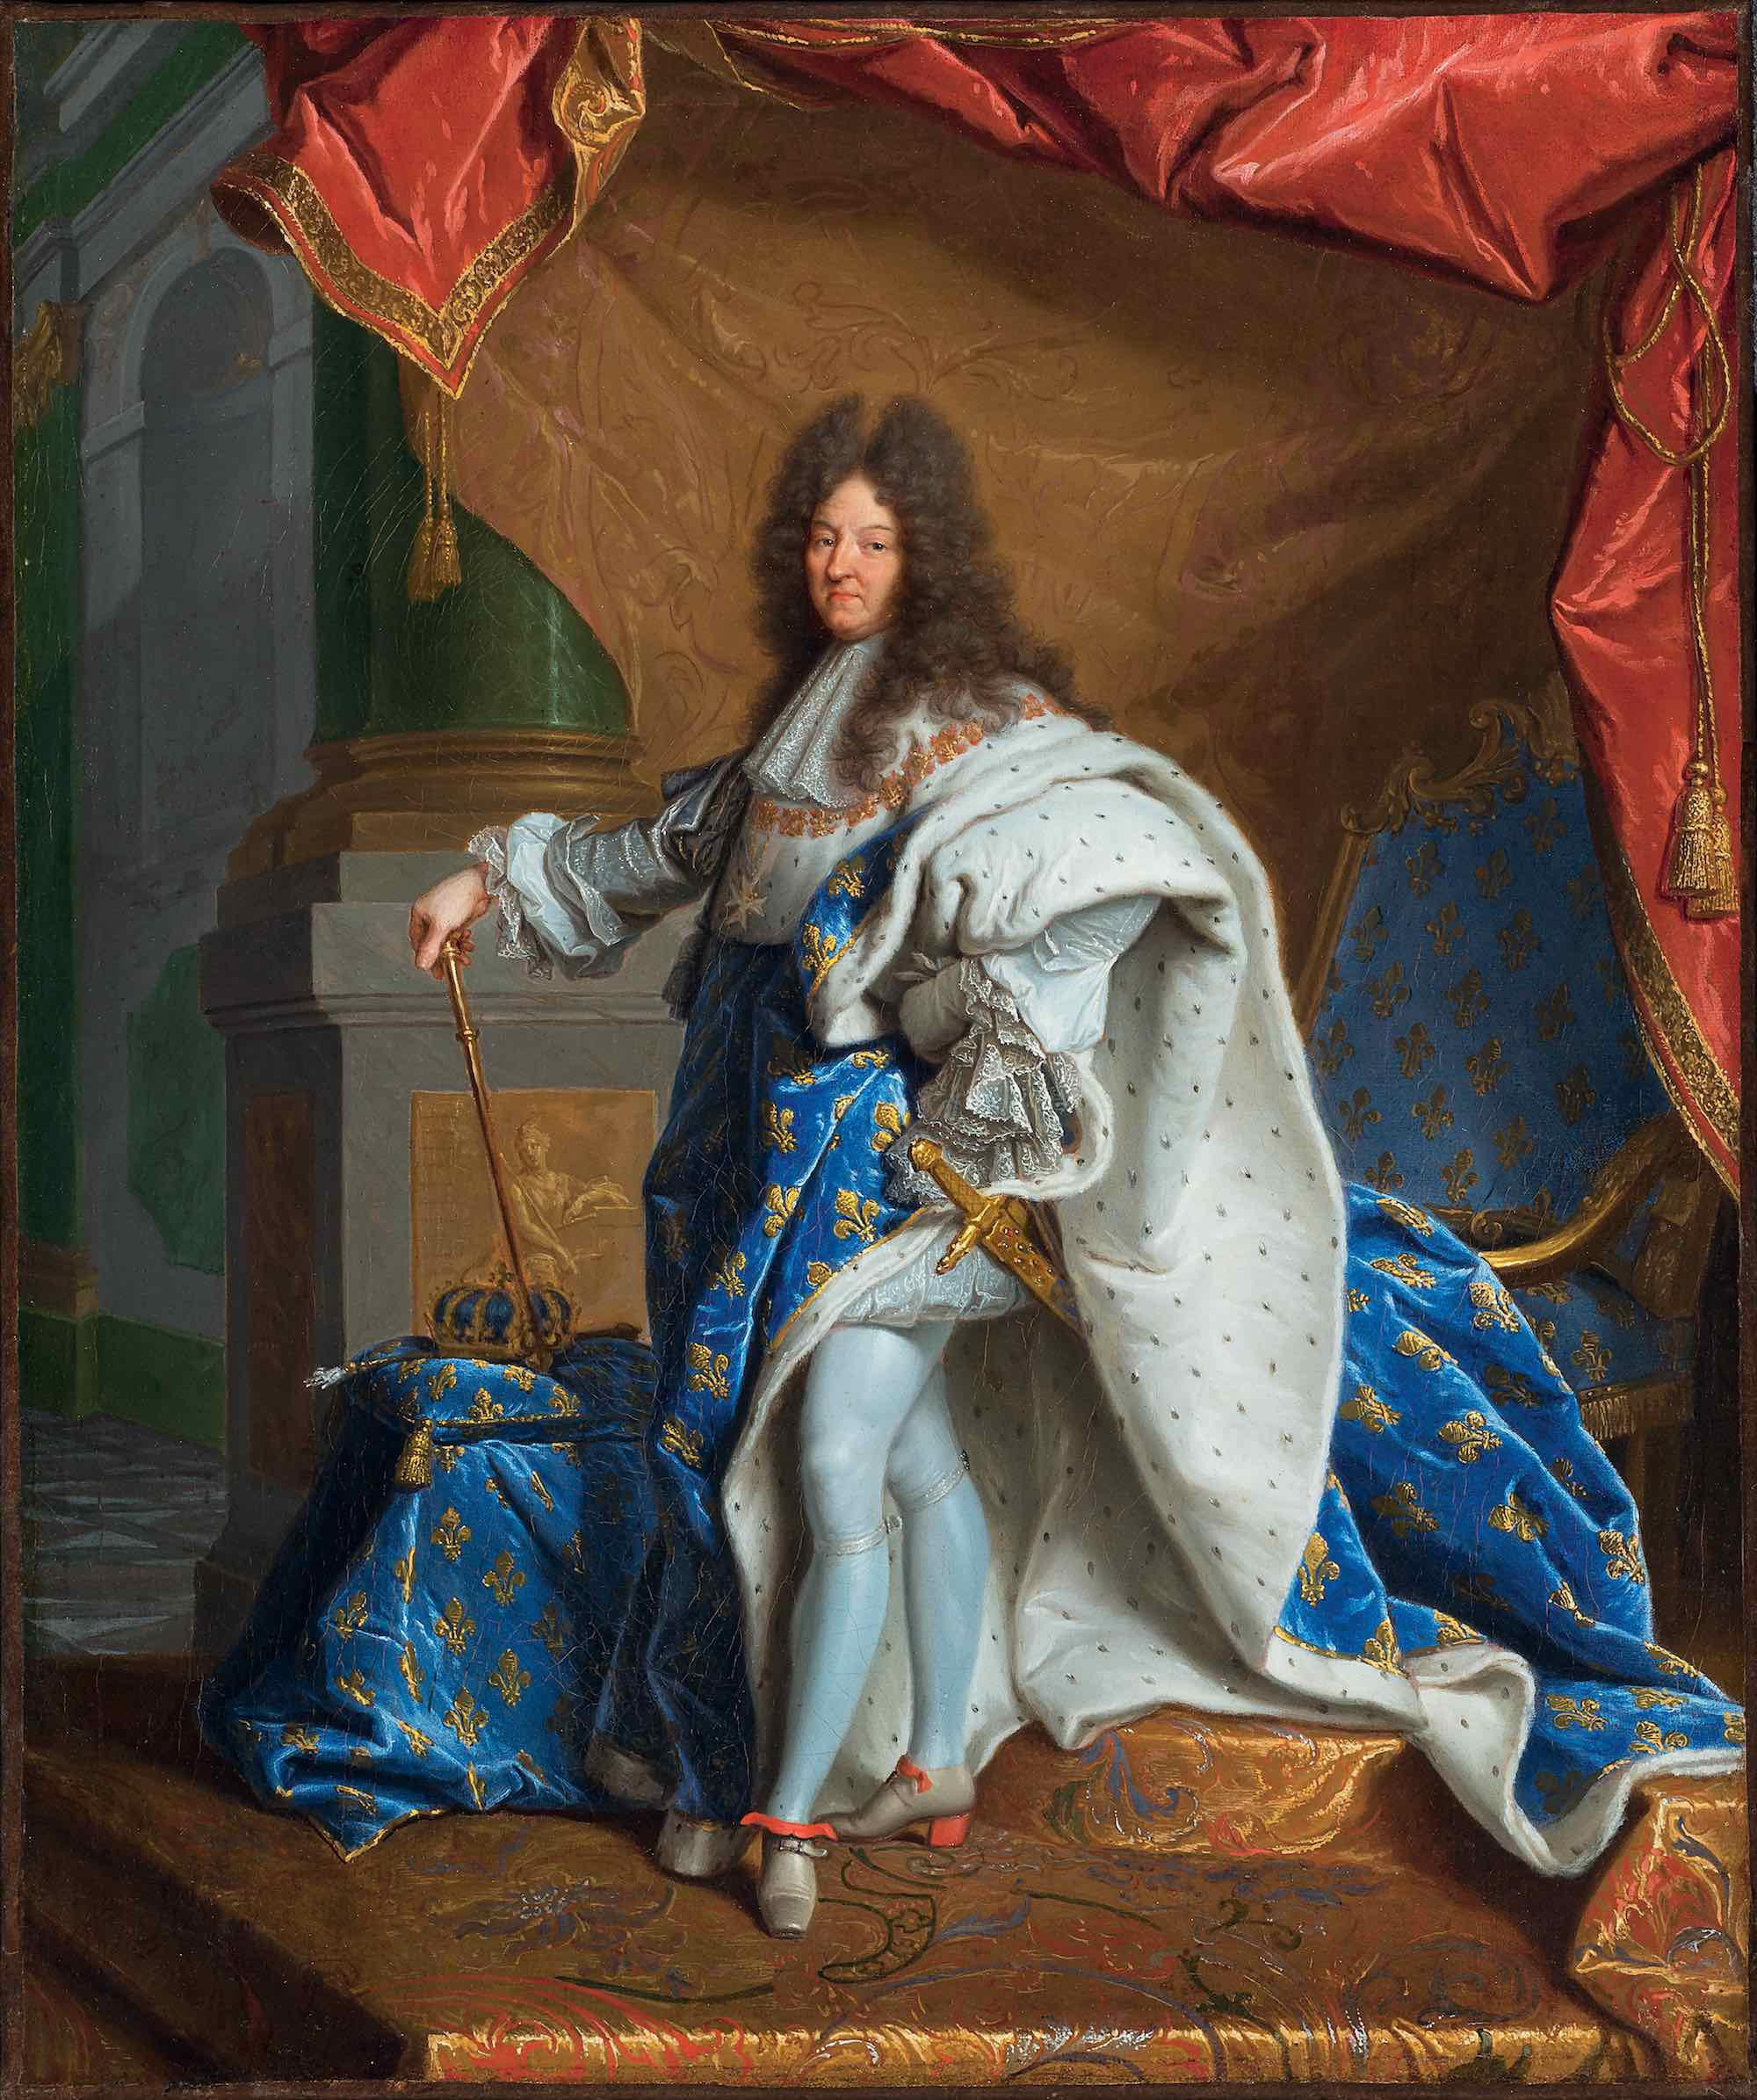 Montreal Acquires Rigaud's Modello for Portrait of Louis XIV | Enfilade